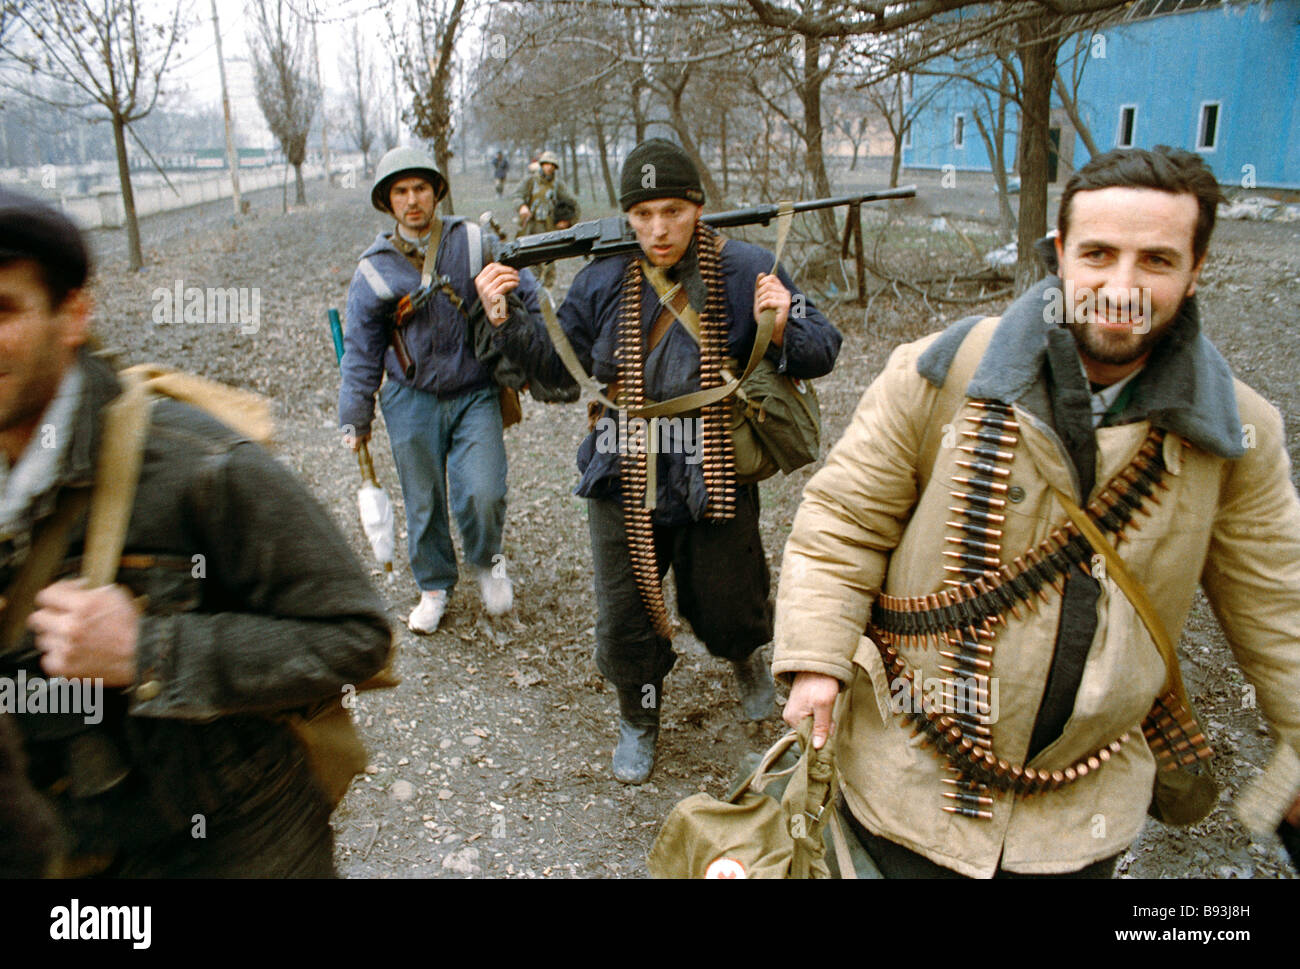 Illegal Chechen paramilitary units in Grozny January 1 1995 - Stock Image